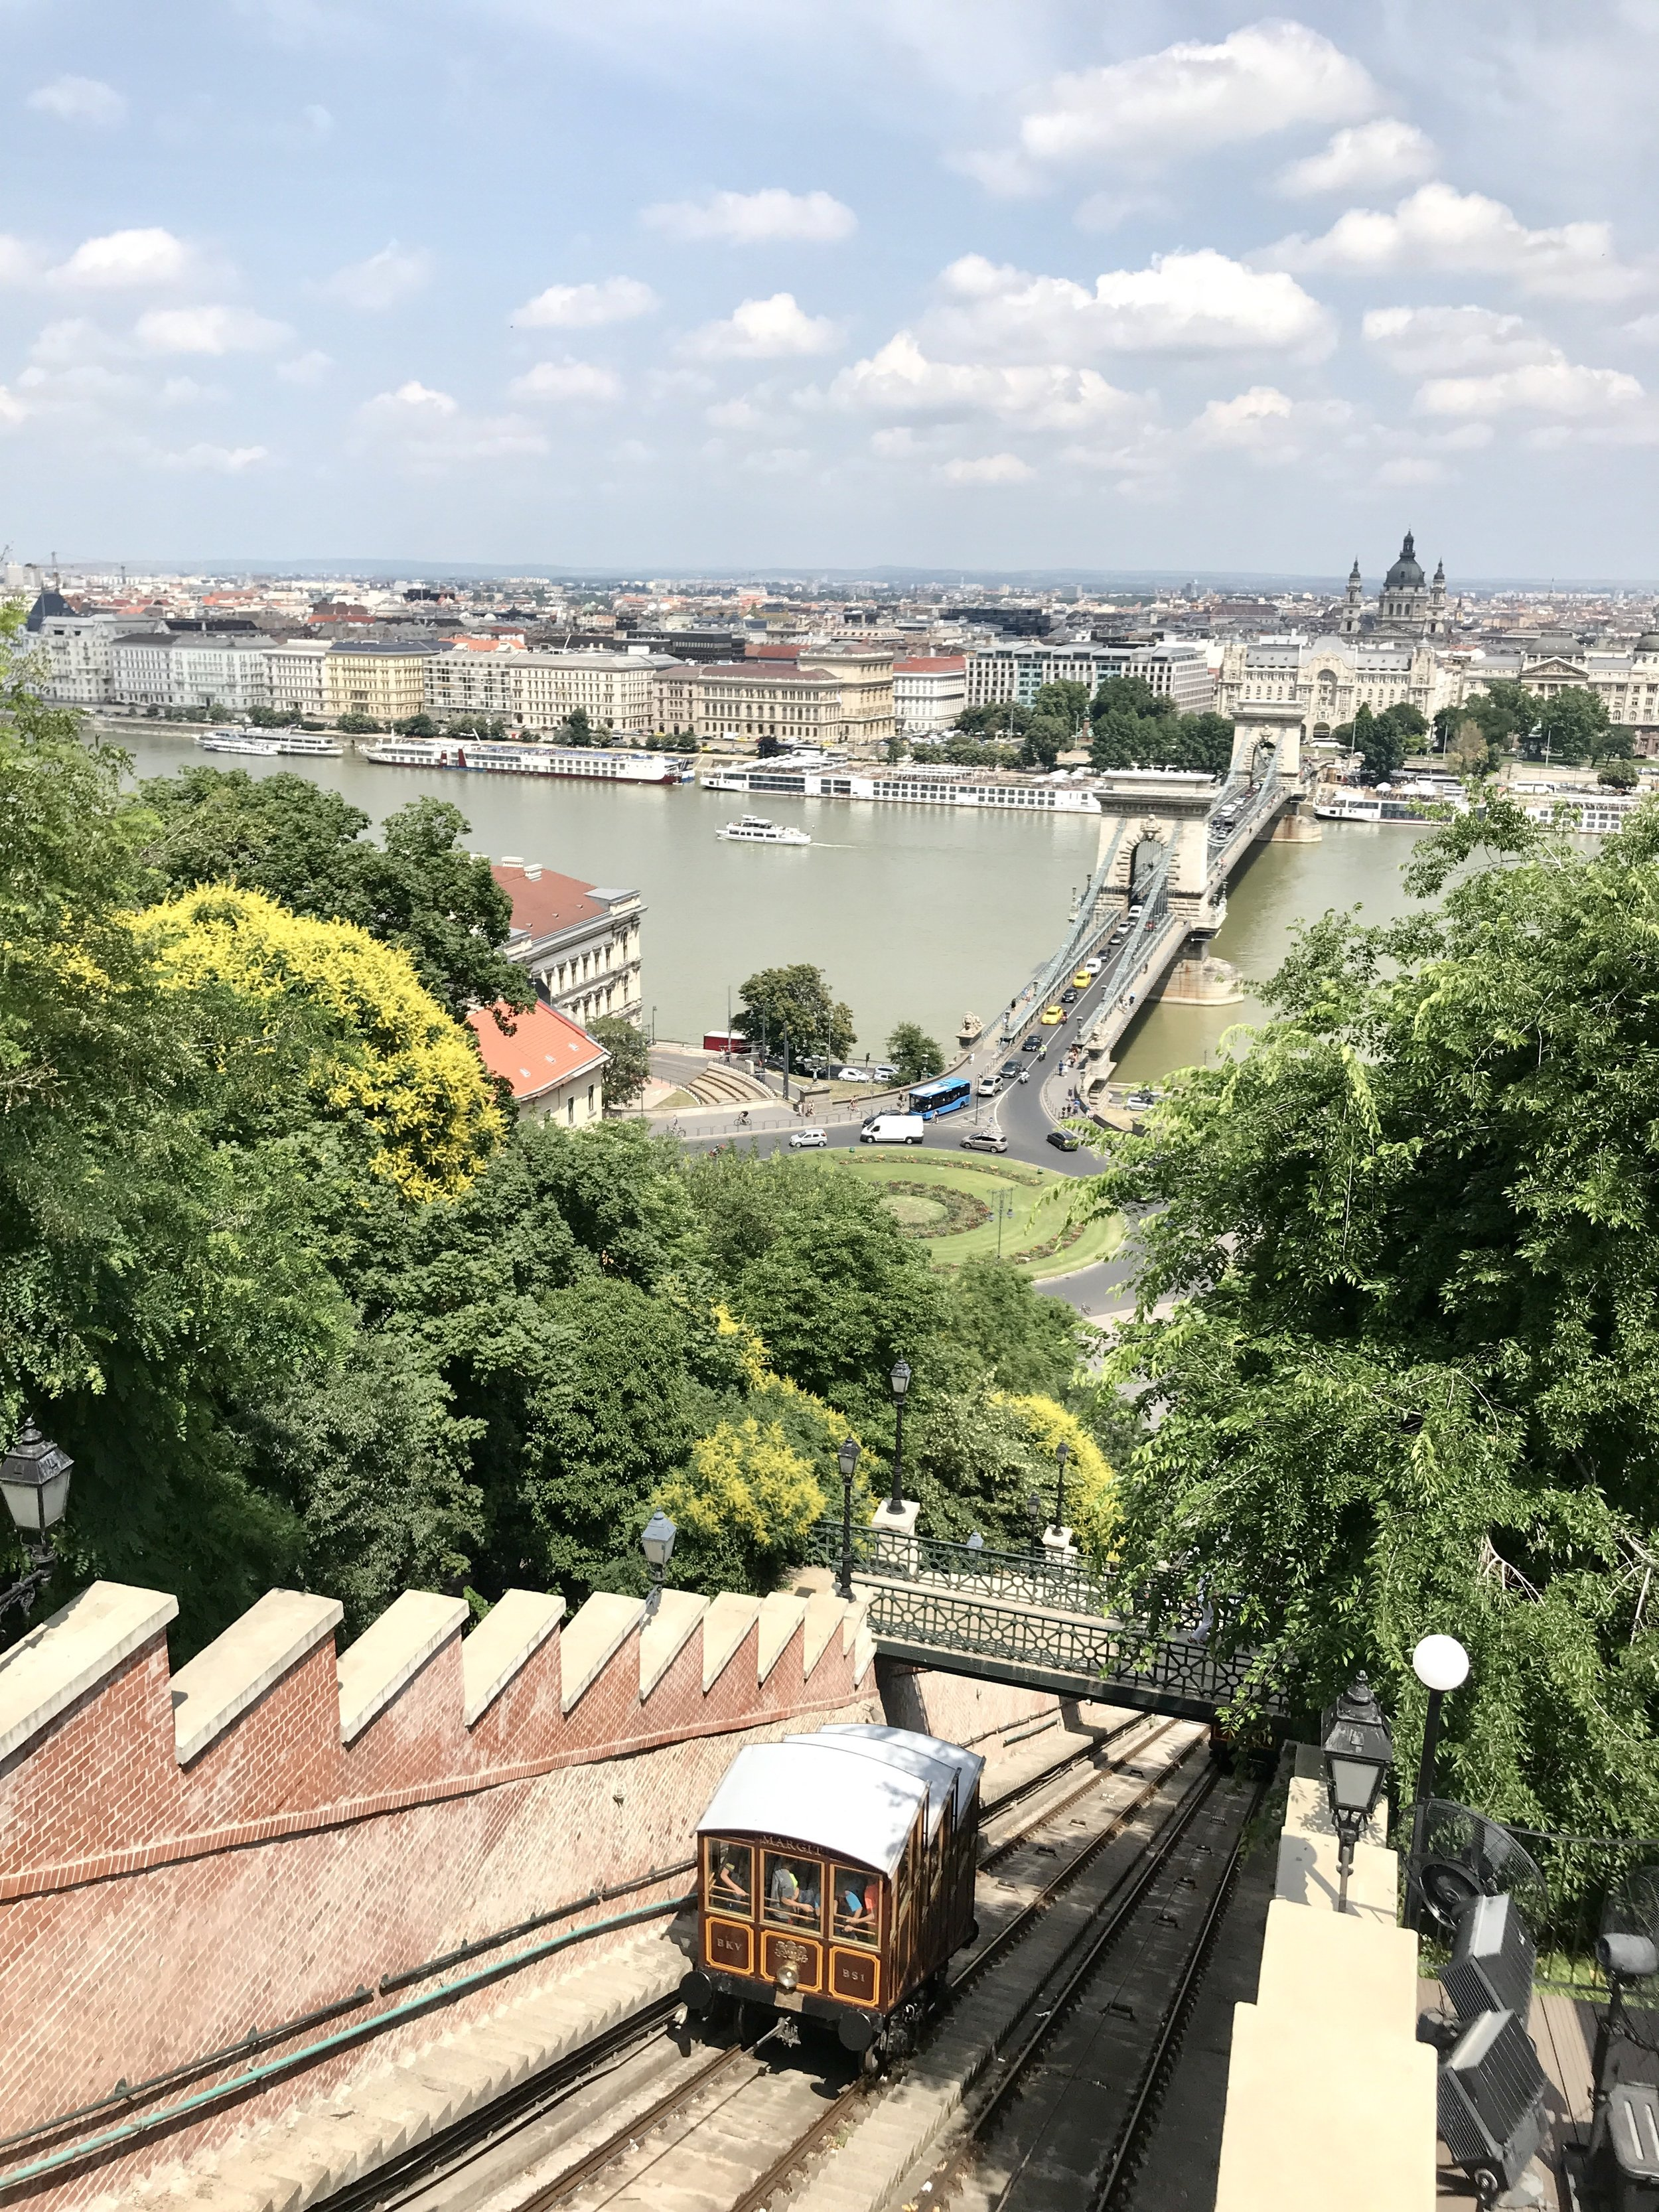 You can also get a really wonderful city view onboard the Castle Hill Funicular.